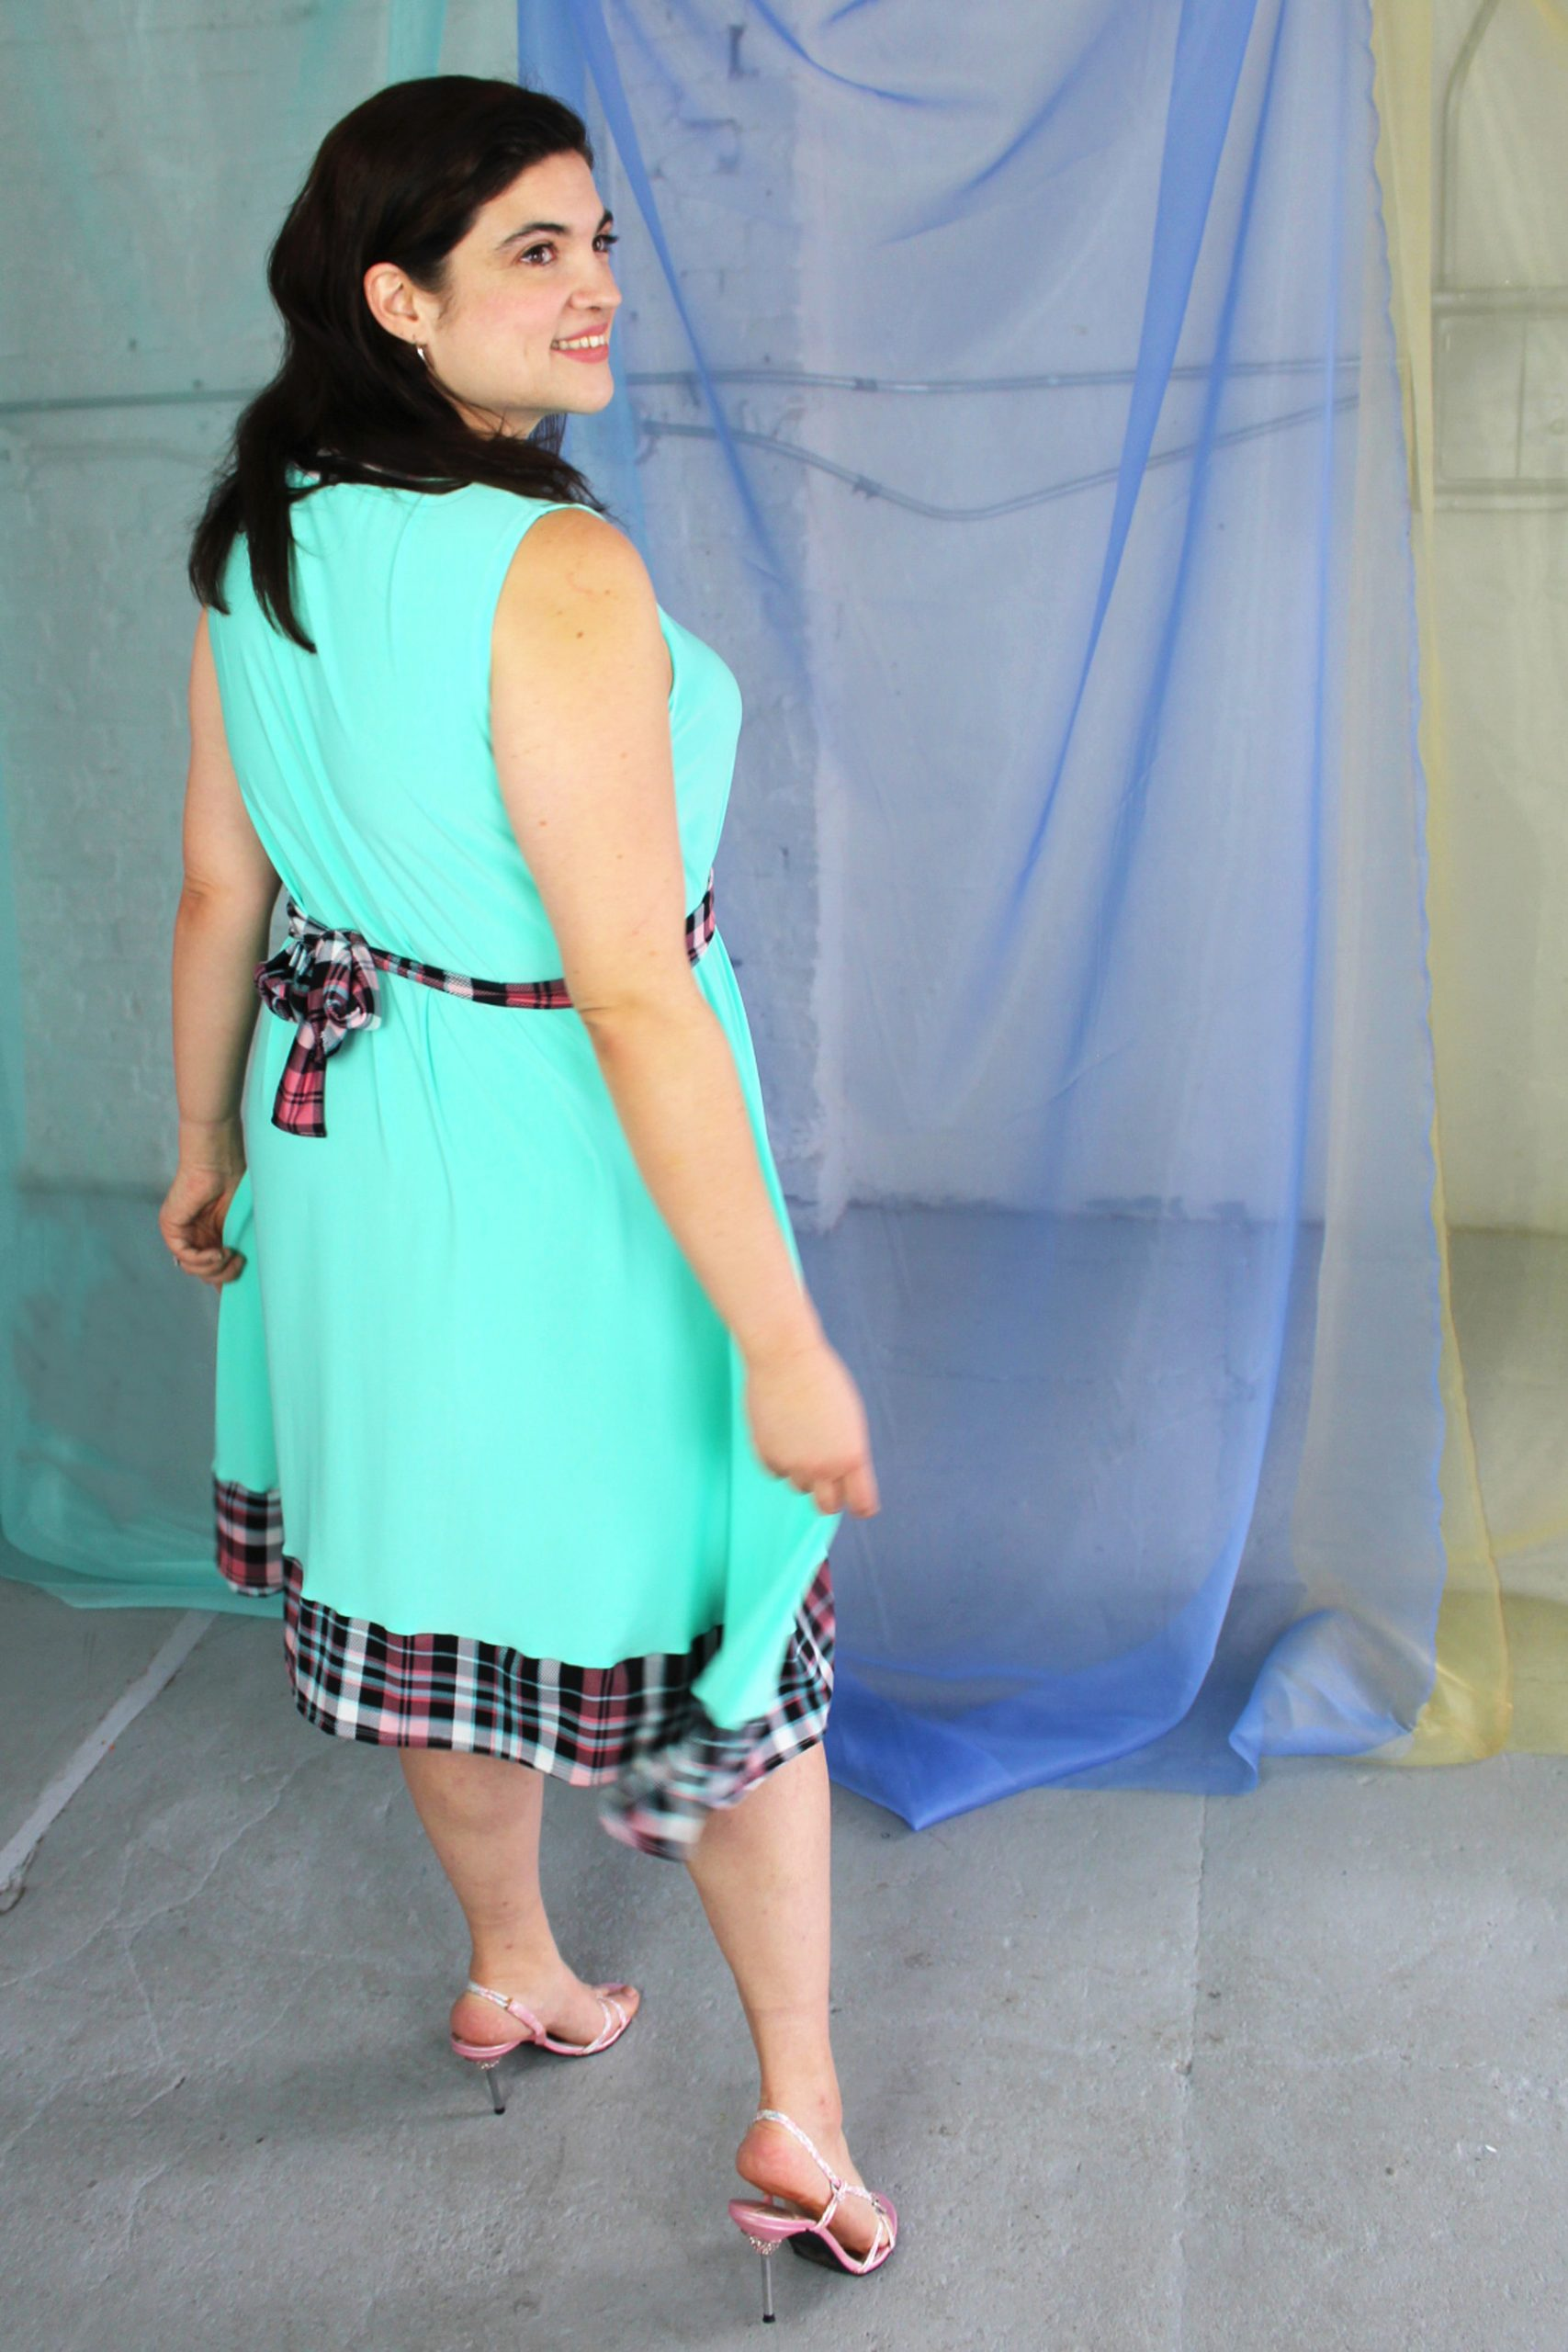 Inbetweenie white brunette model wearing seafoam blue green swing dress with pink plaid trim and waist belt, handmade in NYC